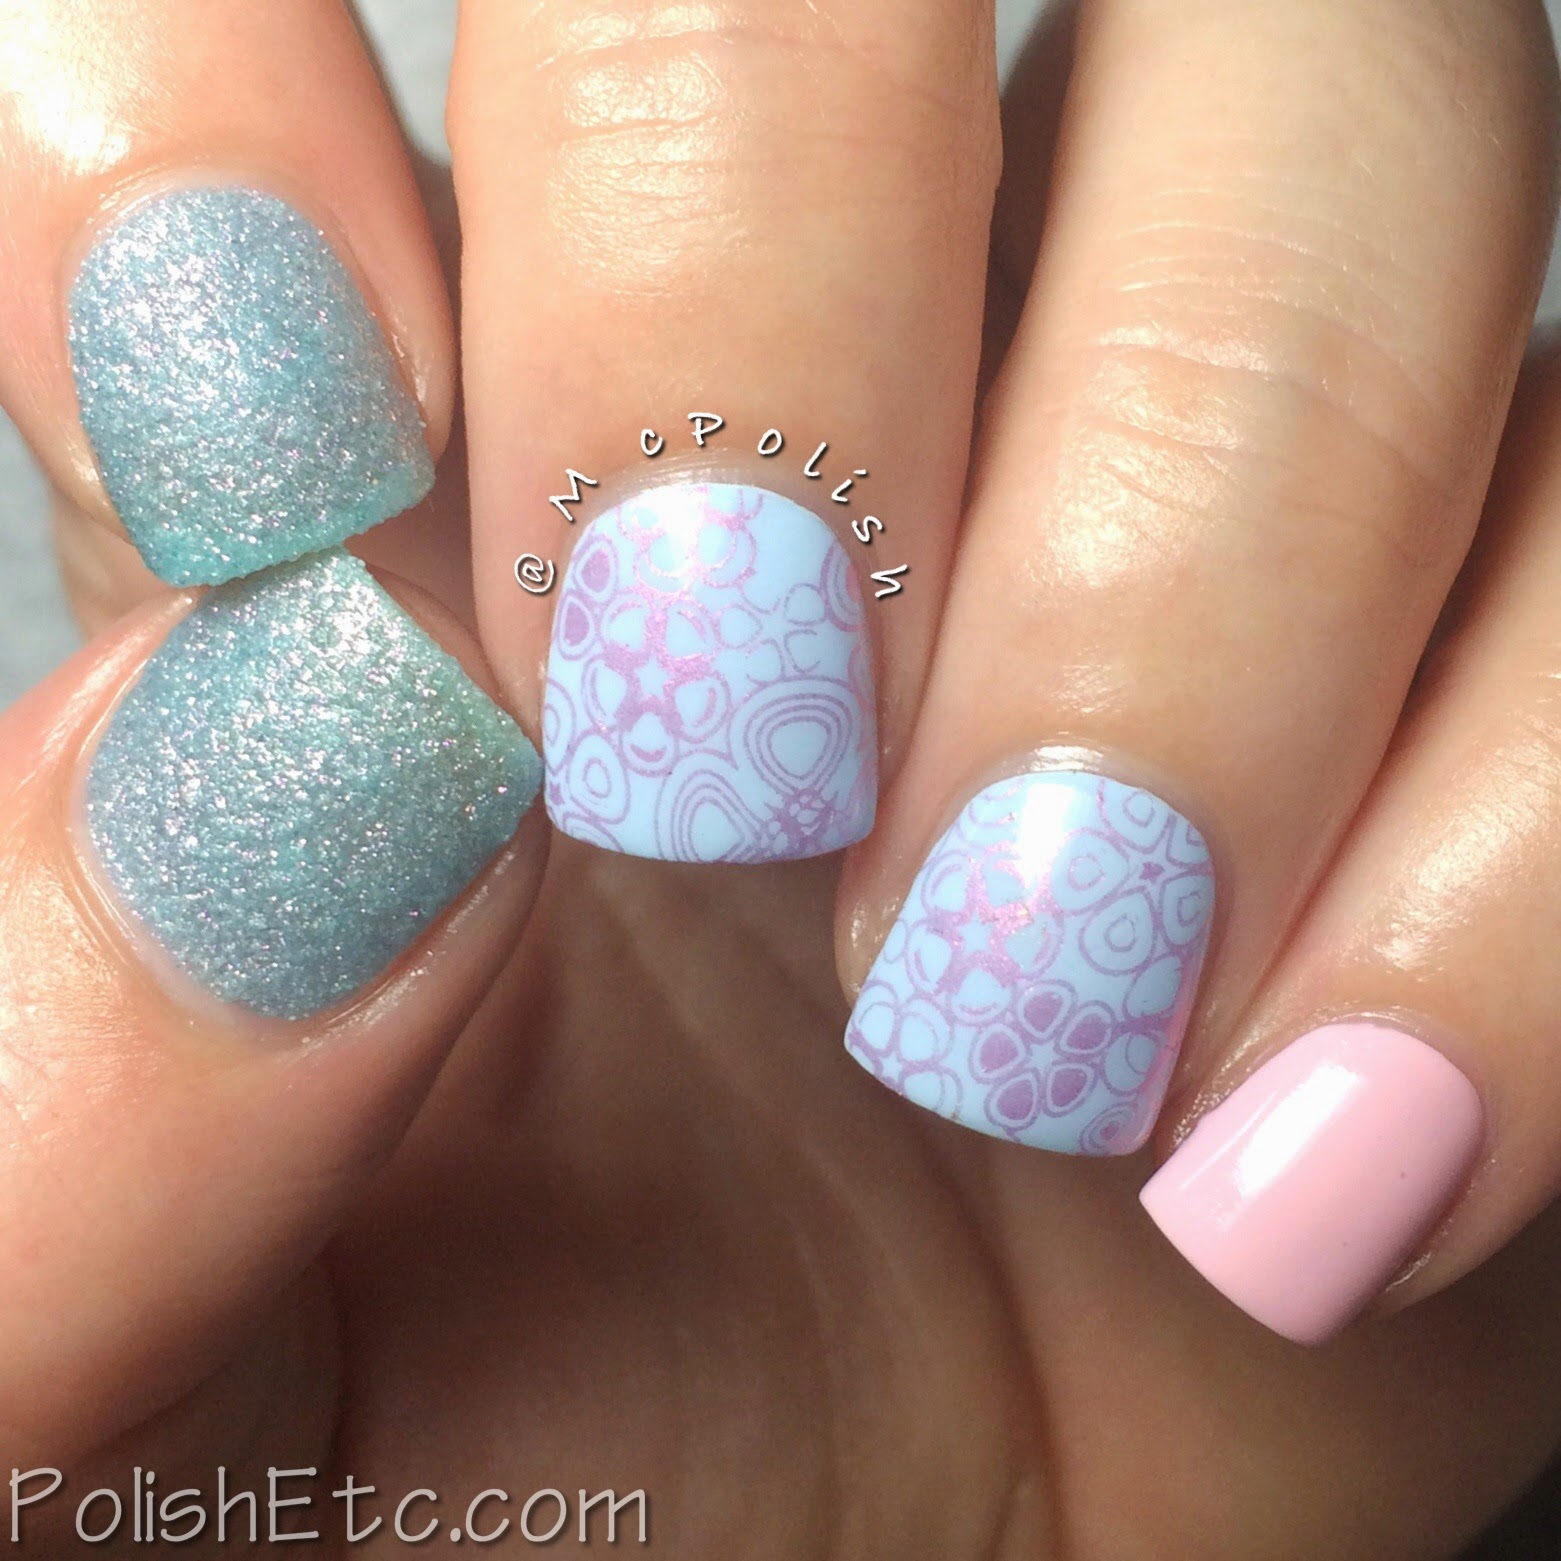 #31dc2014 - 31 Day Nail Art Challenge 2014 by McPolish - BLUE